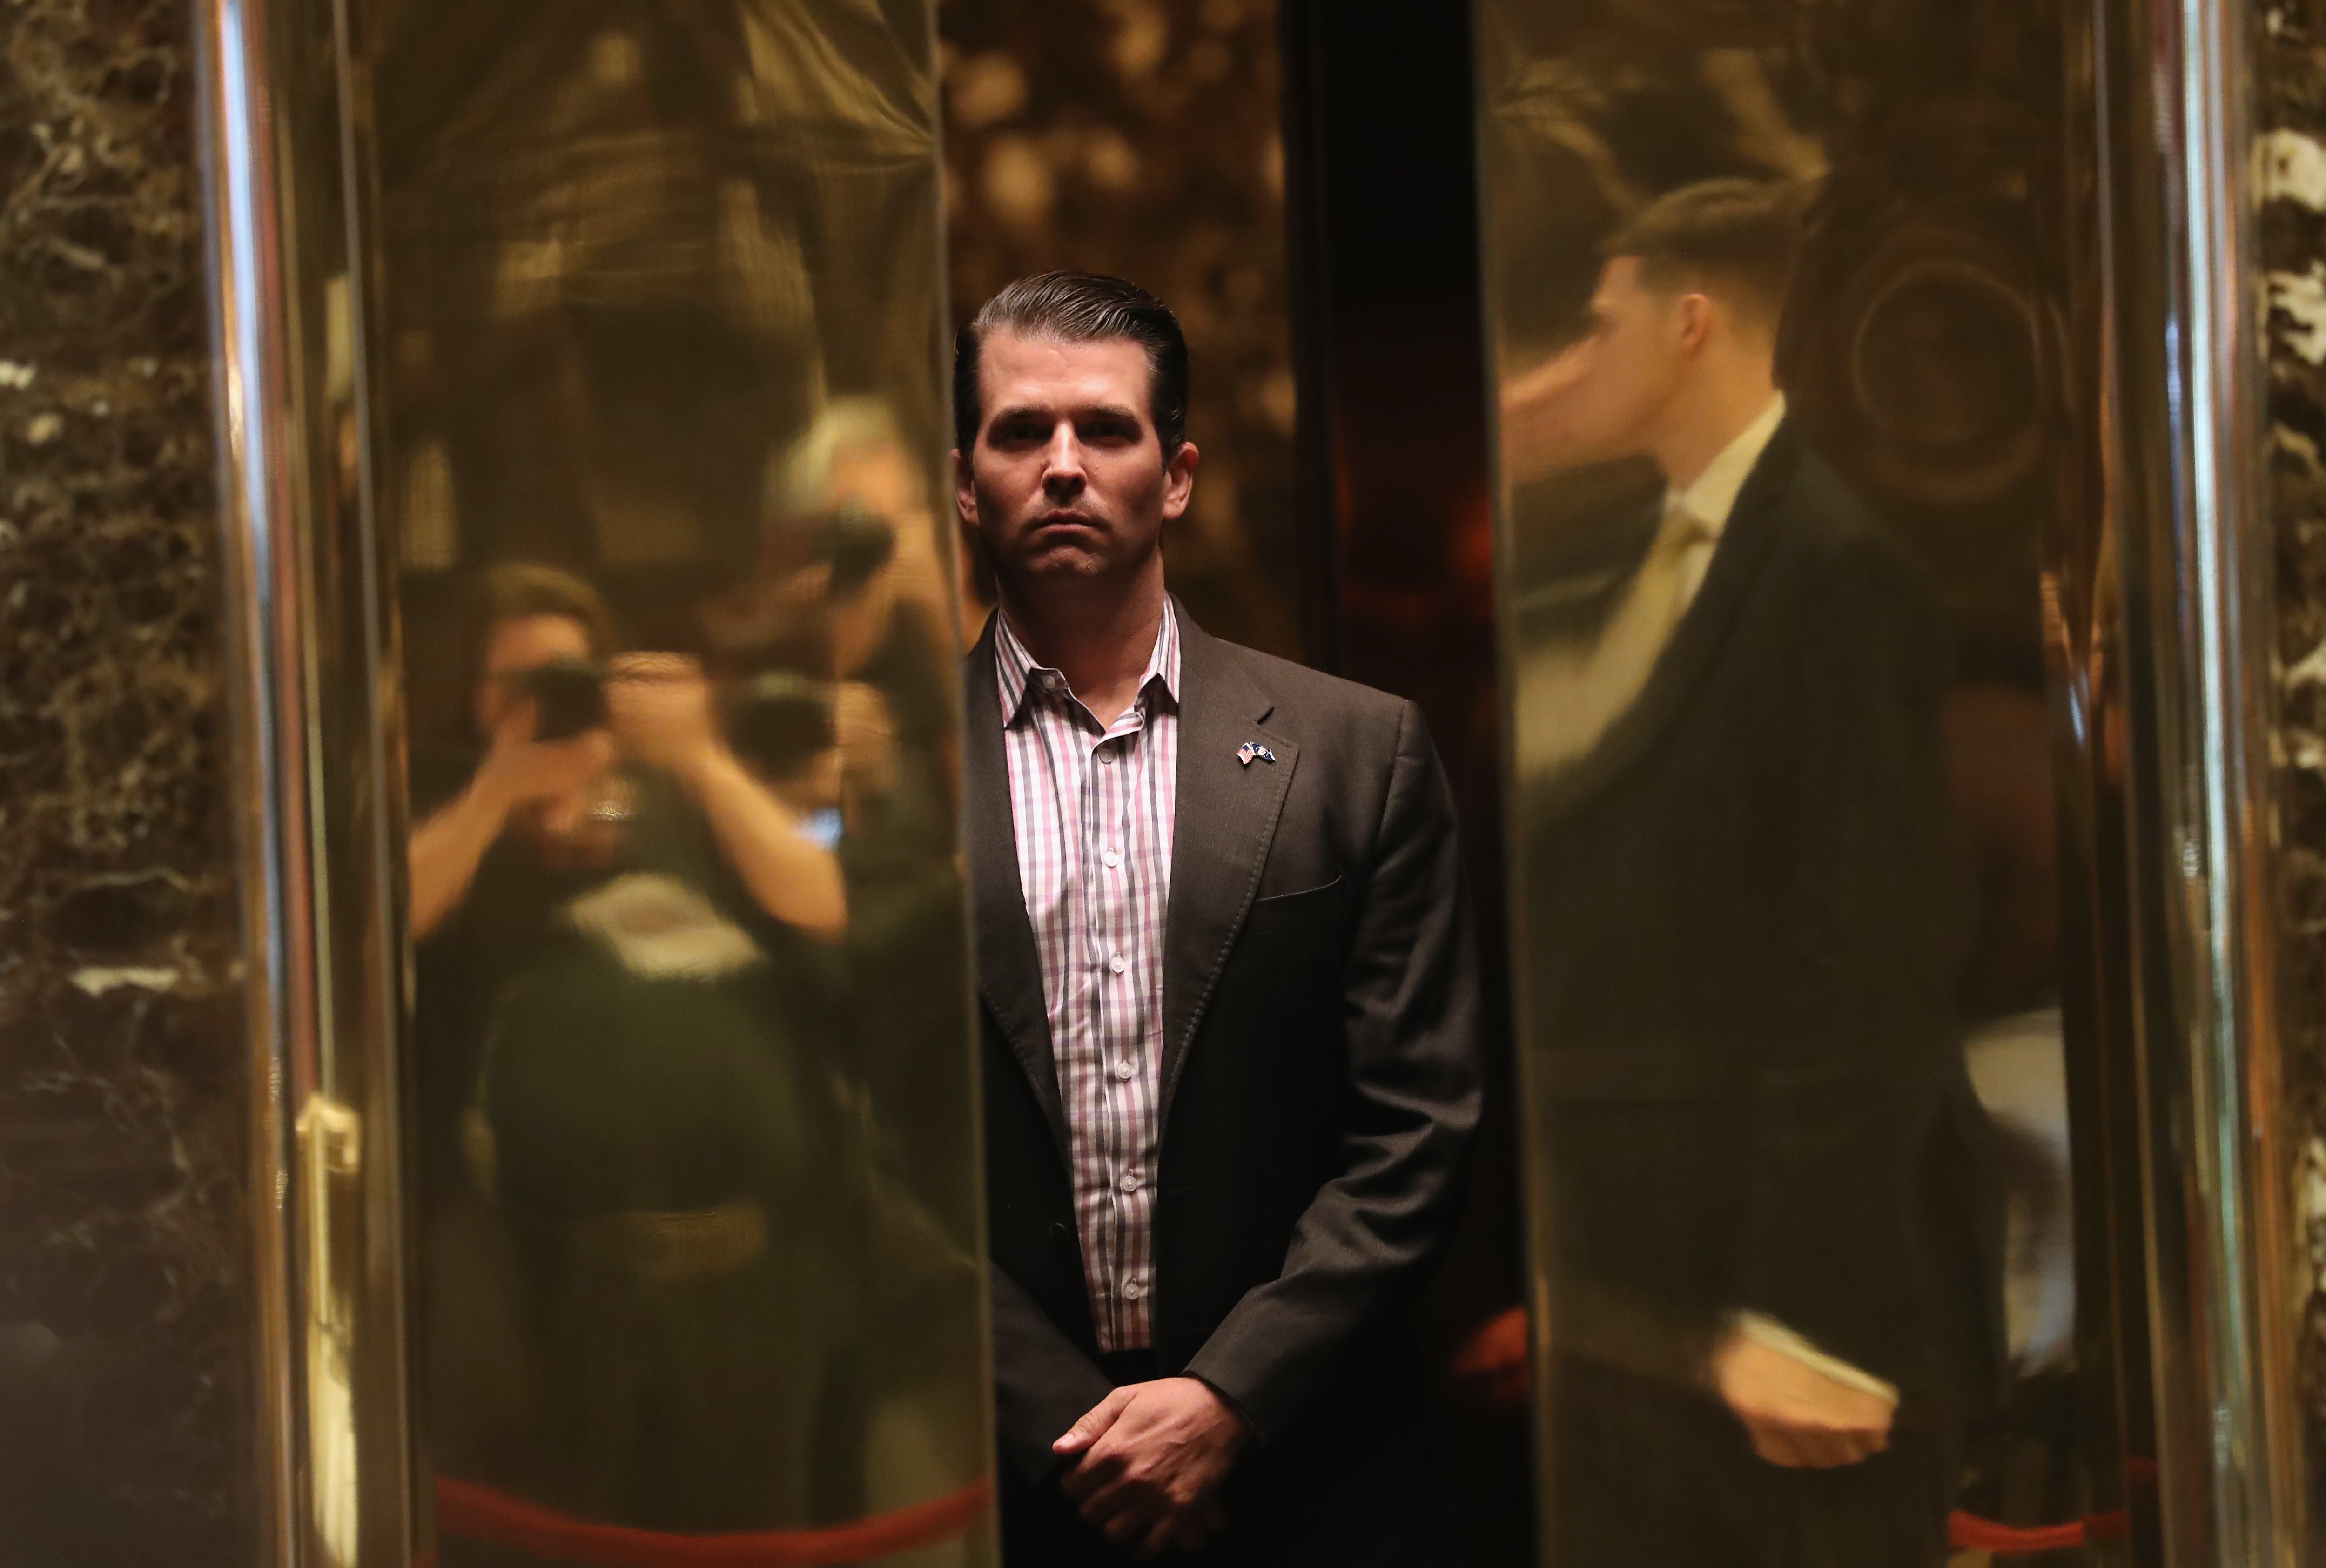 Donald Trump Jr. arrives at Trump Tower on January 18, 2017 in New York City. President-elect Donald Trump is to be sworn in as the 45th President of the United States on January 20.